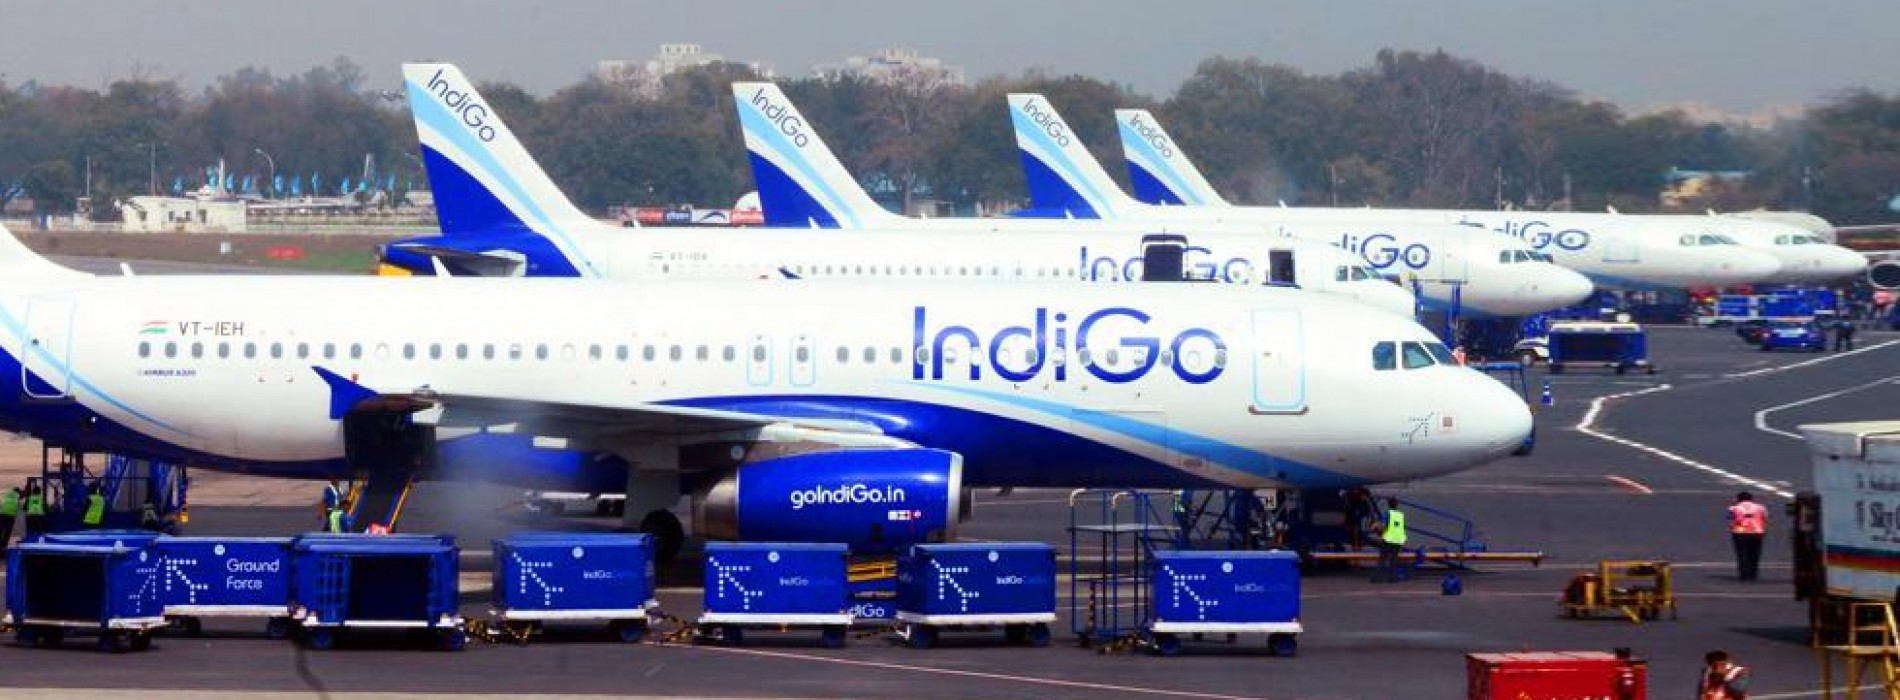 Indian Airlines to Induct 900 Aircraft in Coming Years, Indigo to Add 448 Planes